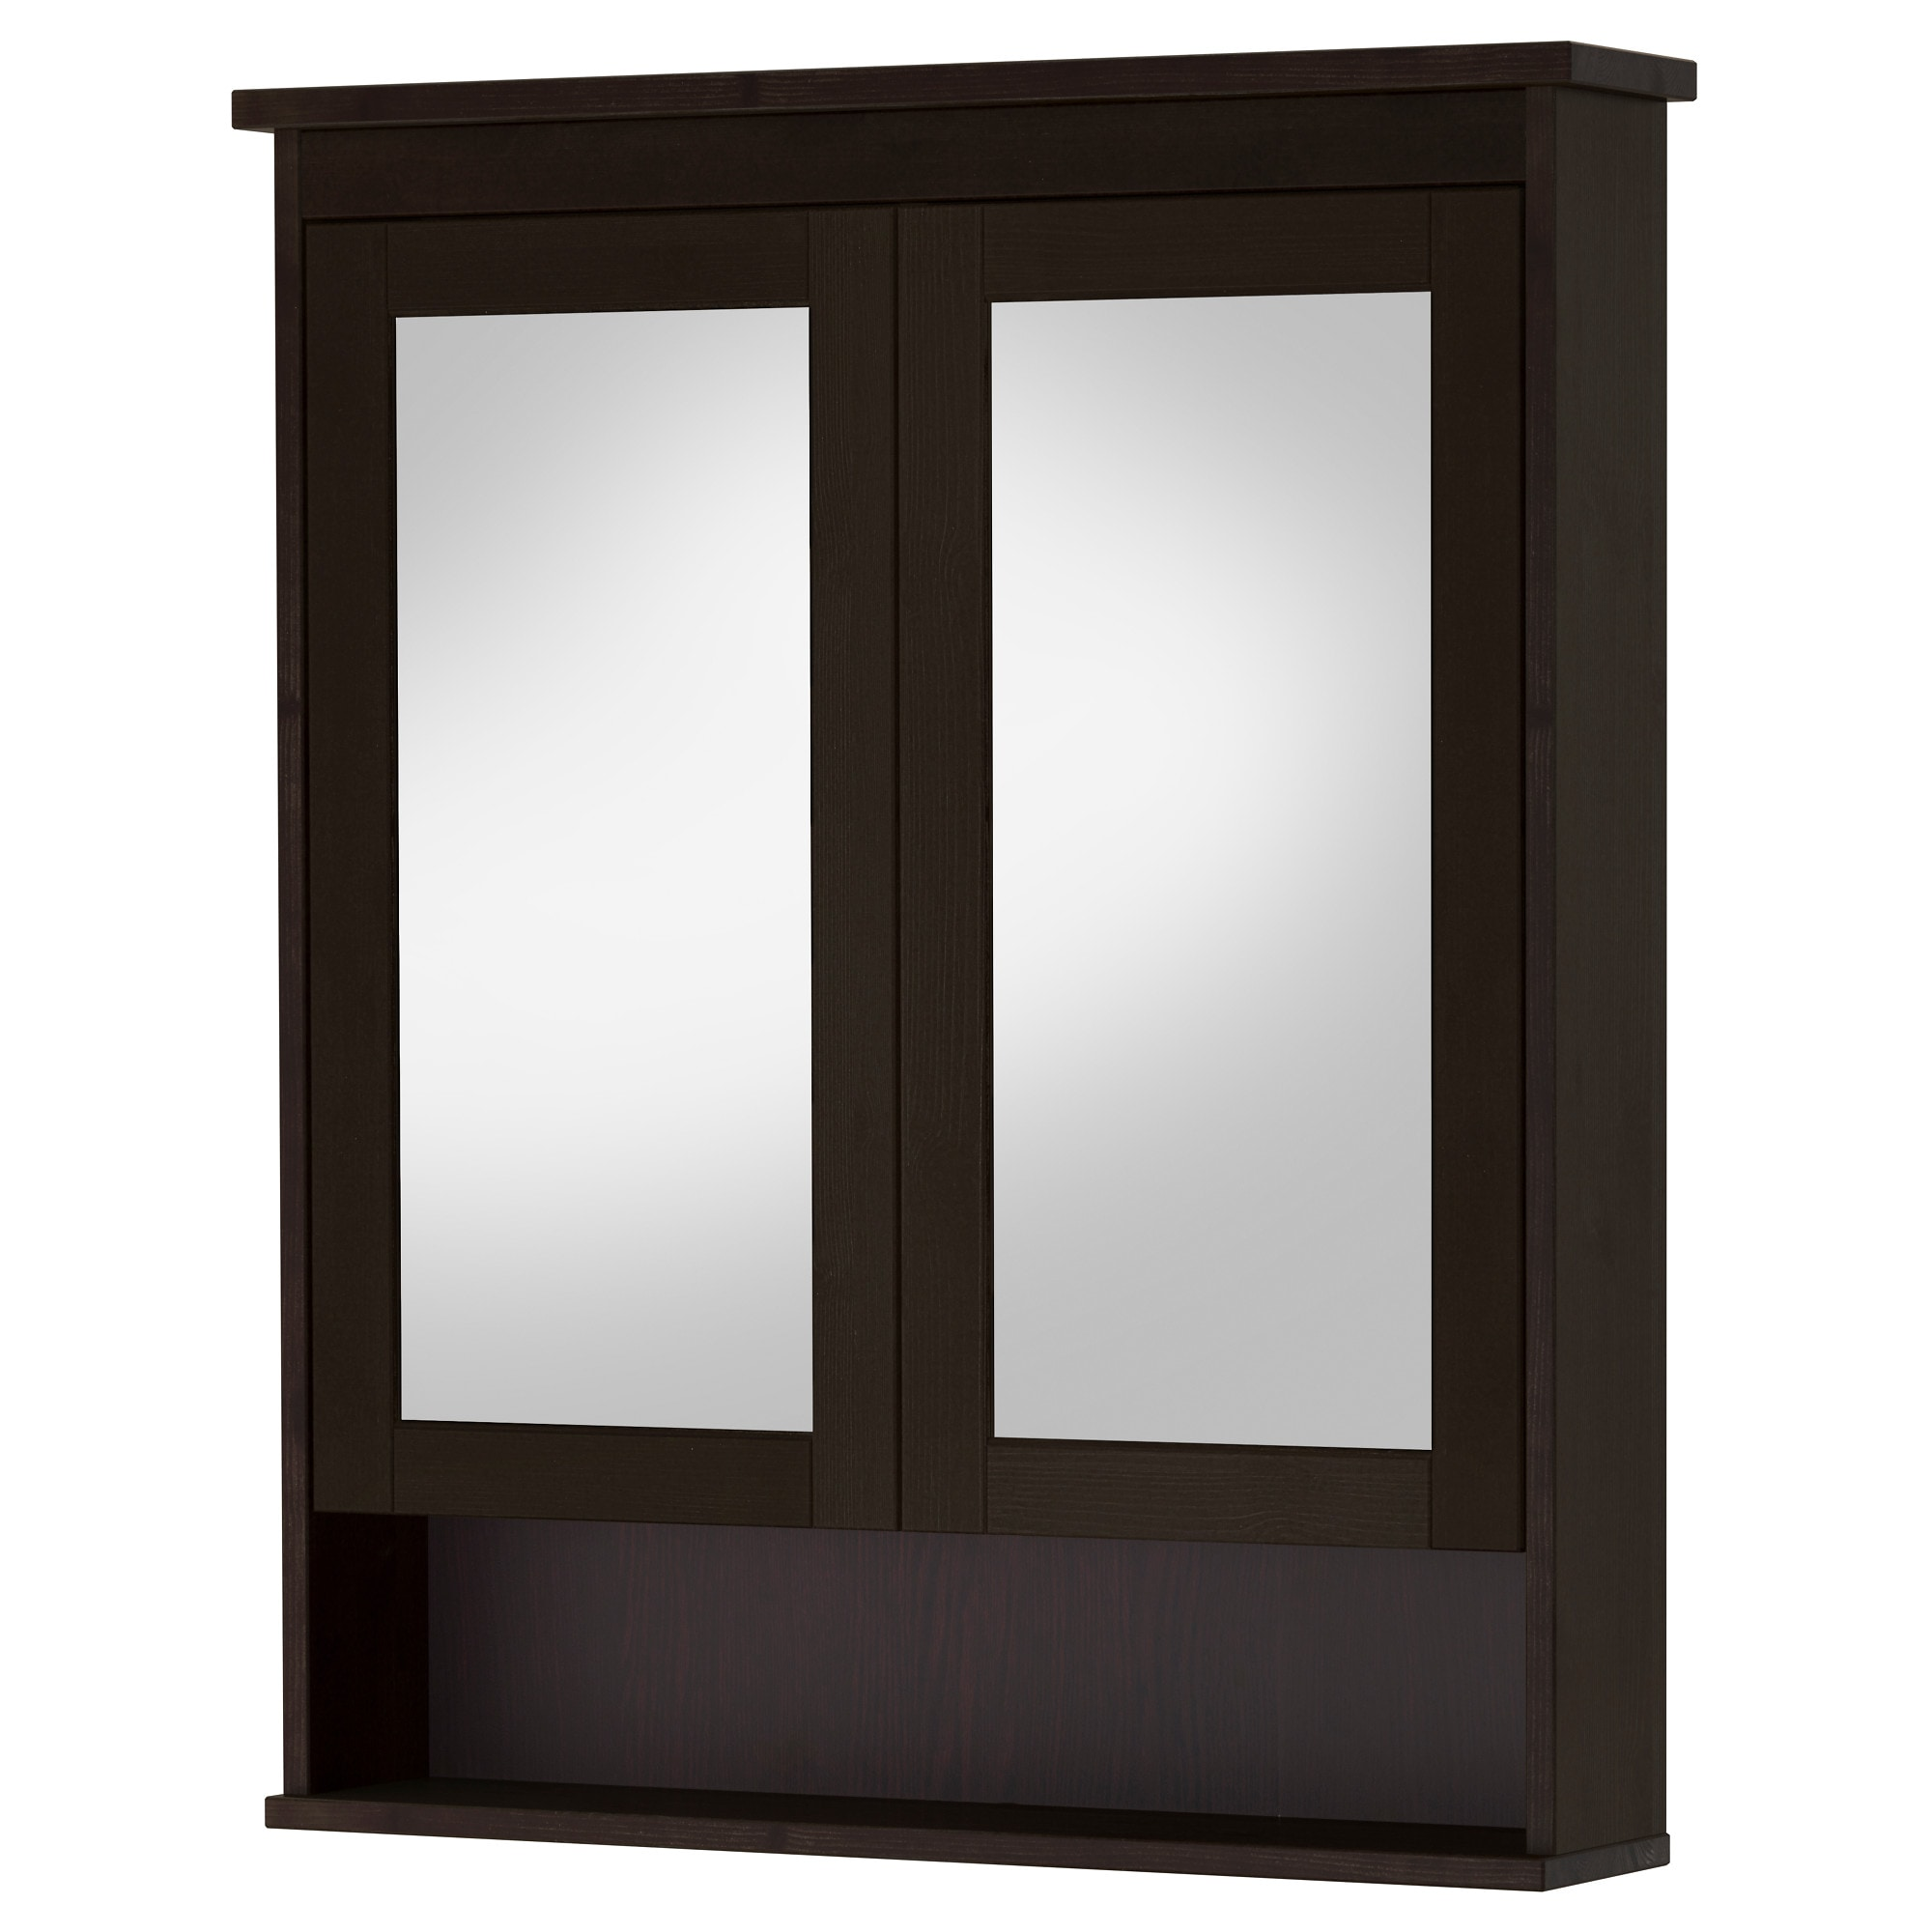 HEMNES Mirror Cabinet With 2 Doors Black Brown Stain Width 32 5